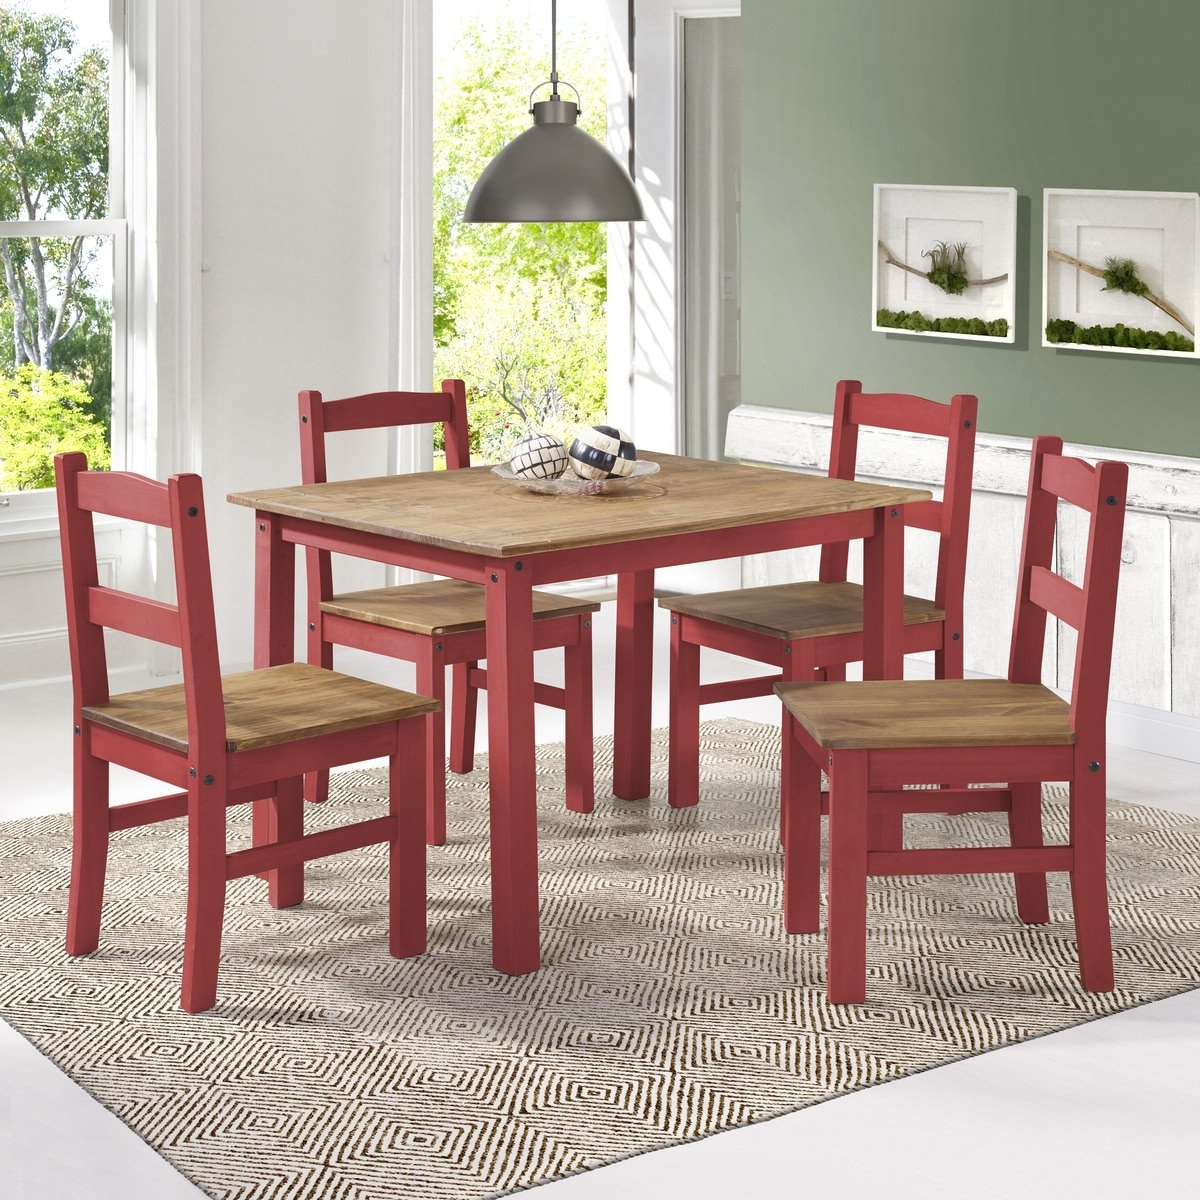 York Red Wash 5 Piece Solid Wood Dining Setmanhattan Comfort For Most Current Walden 9 Piece Extension Dining Sets (View 22 of 25)